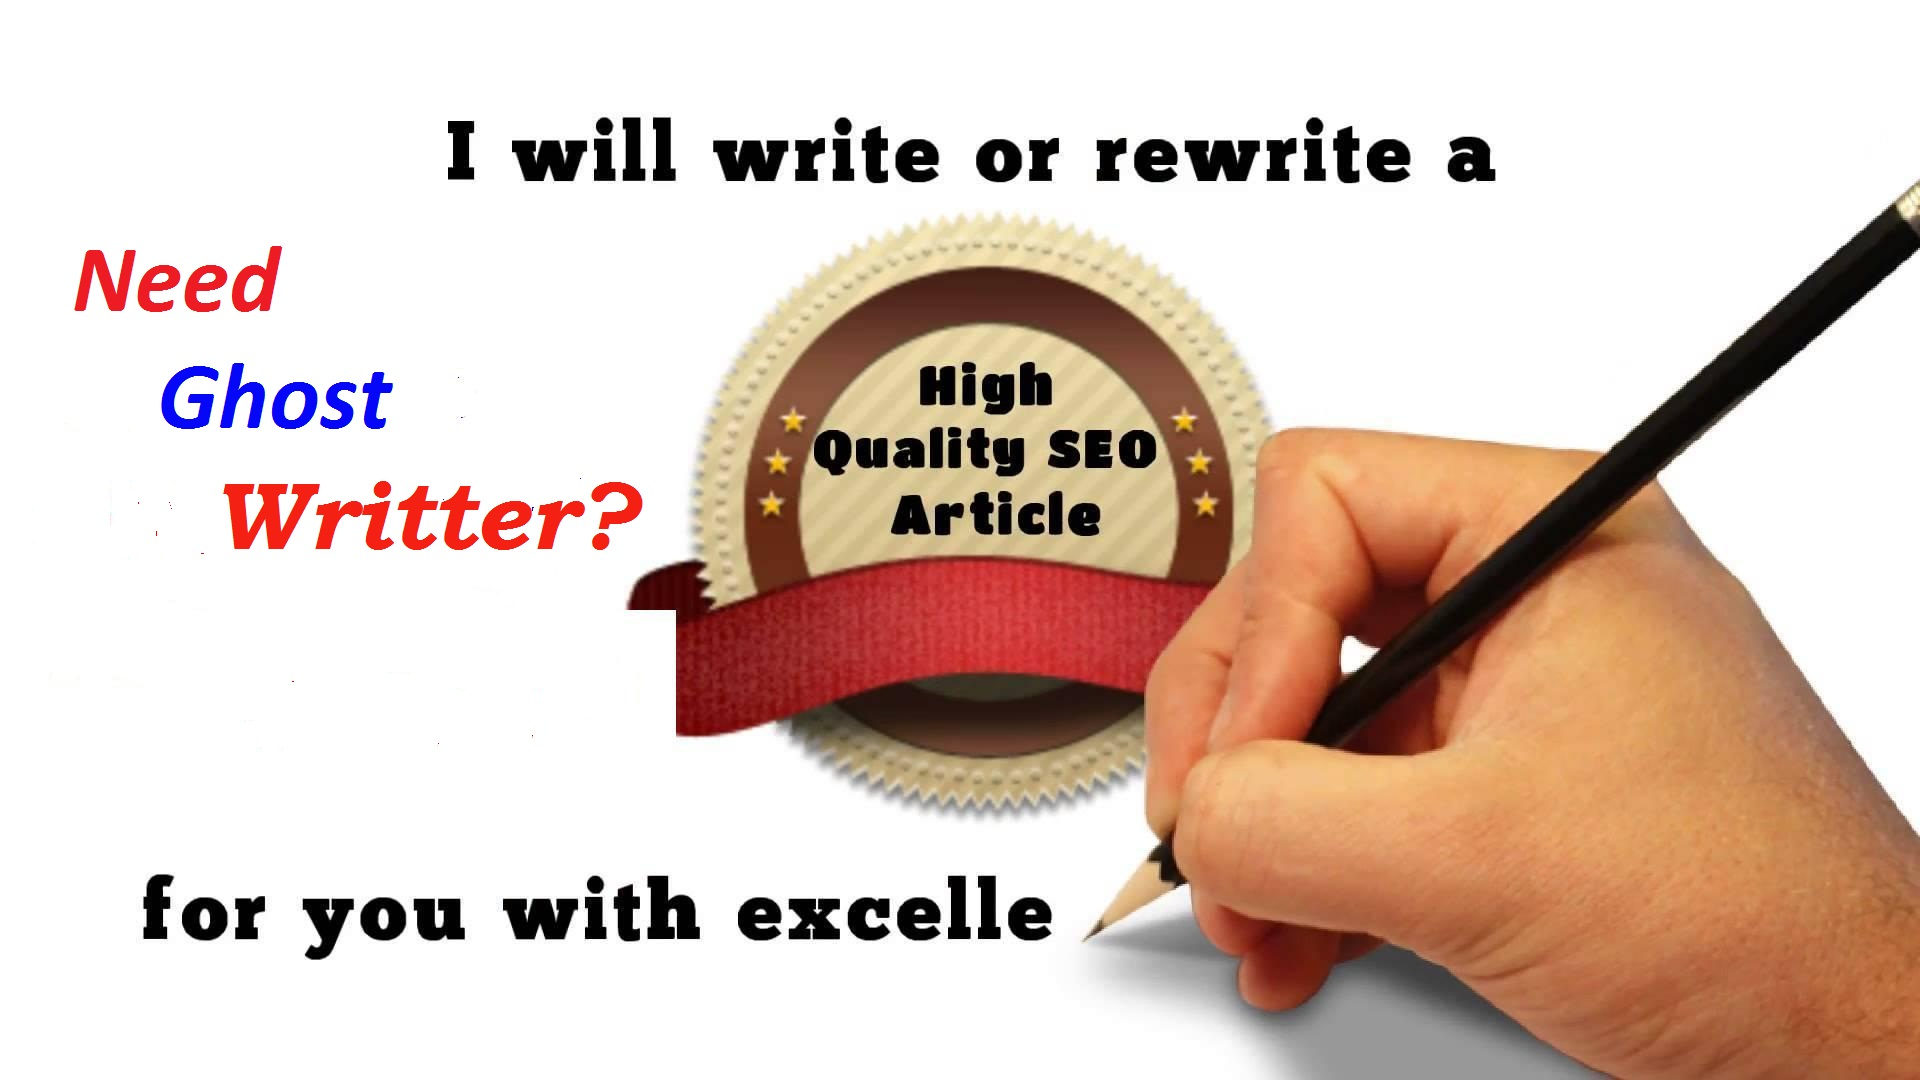 SEO Article Freelance Writer - I Will Be Your SEO Article Ghost Writer For Blog Or Website Post - Hurry Order Now Limited Time OFFER